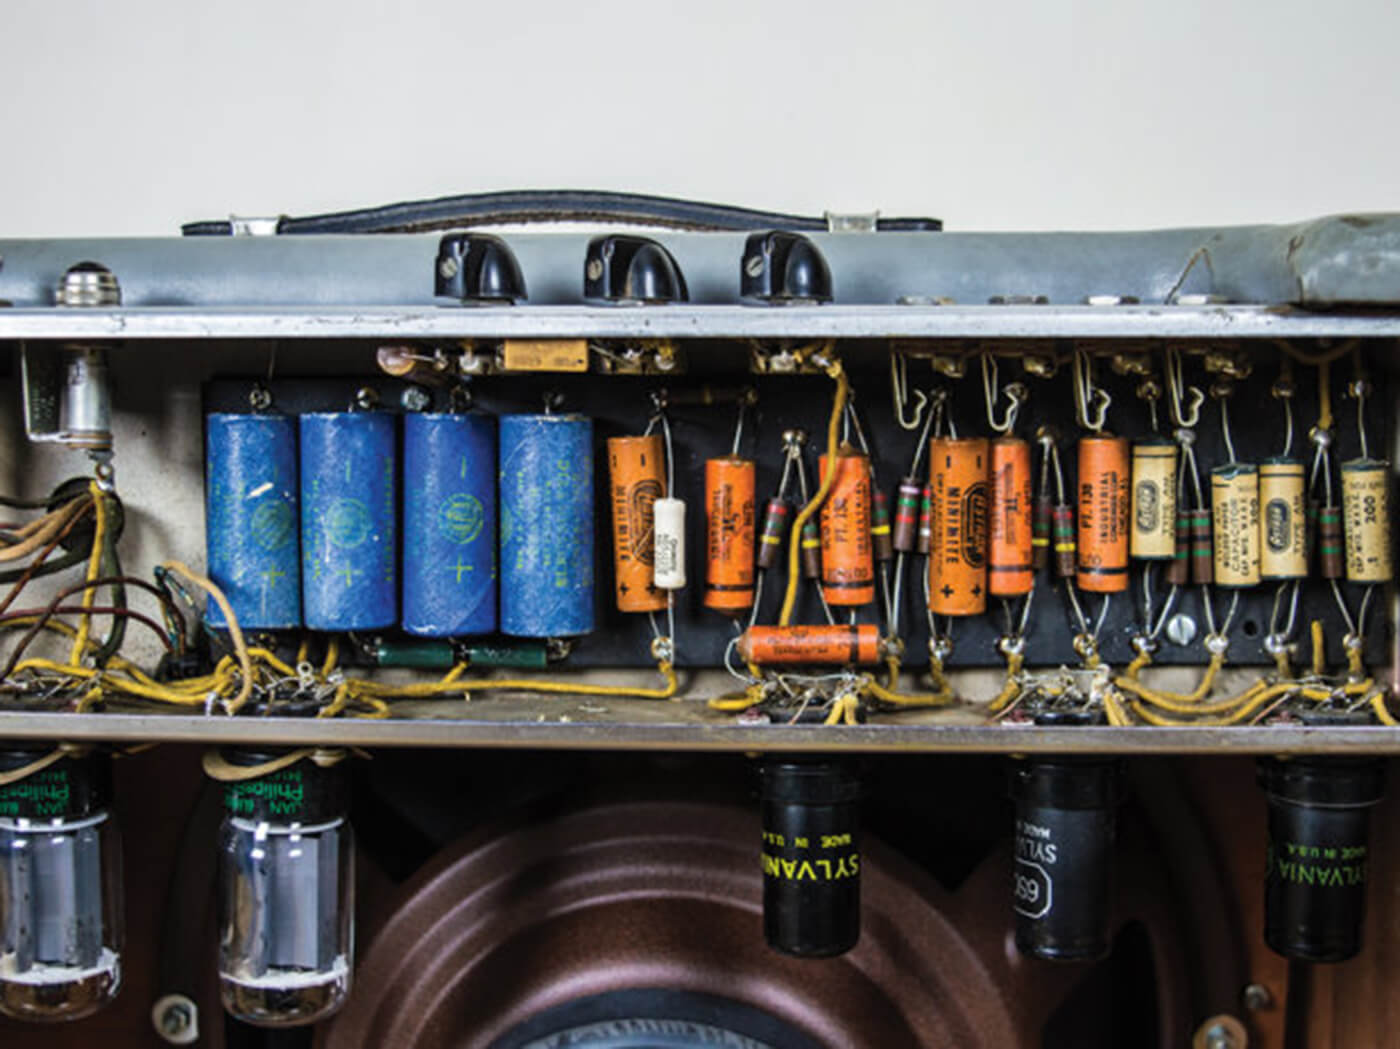 Back shot of capacitors and tubes in amp